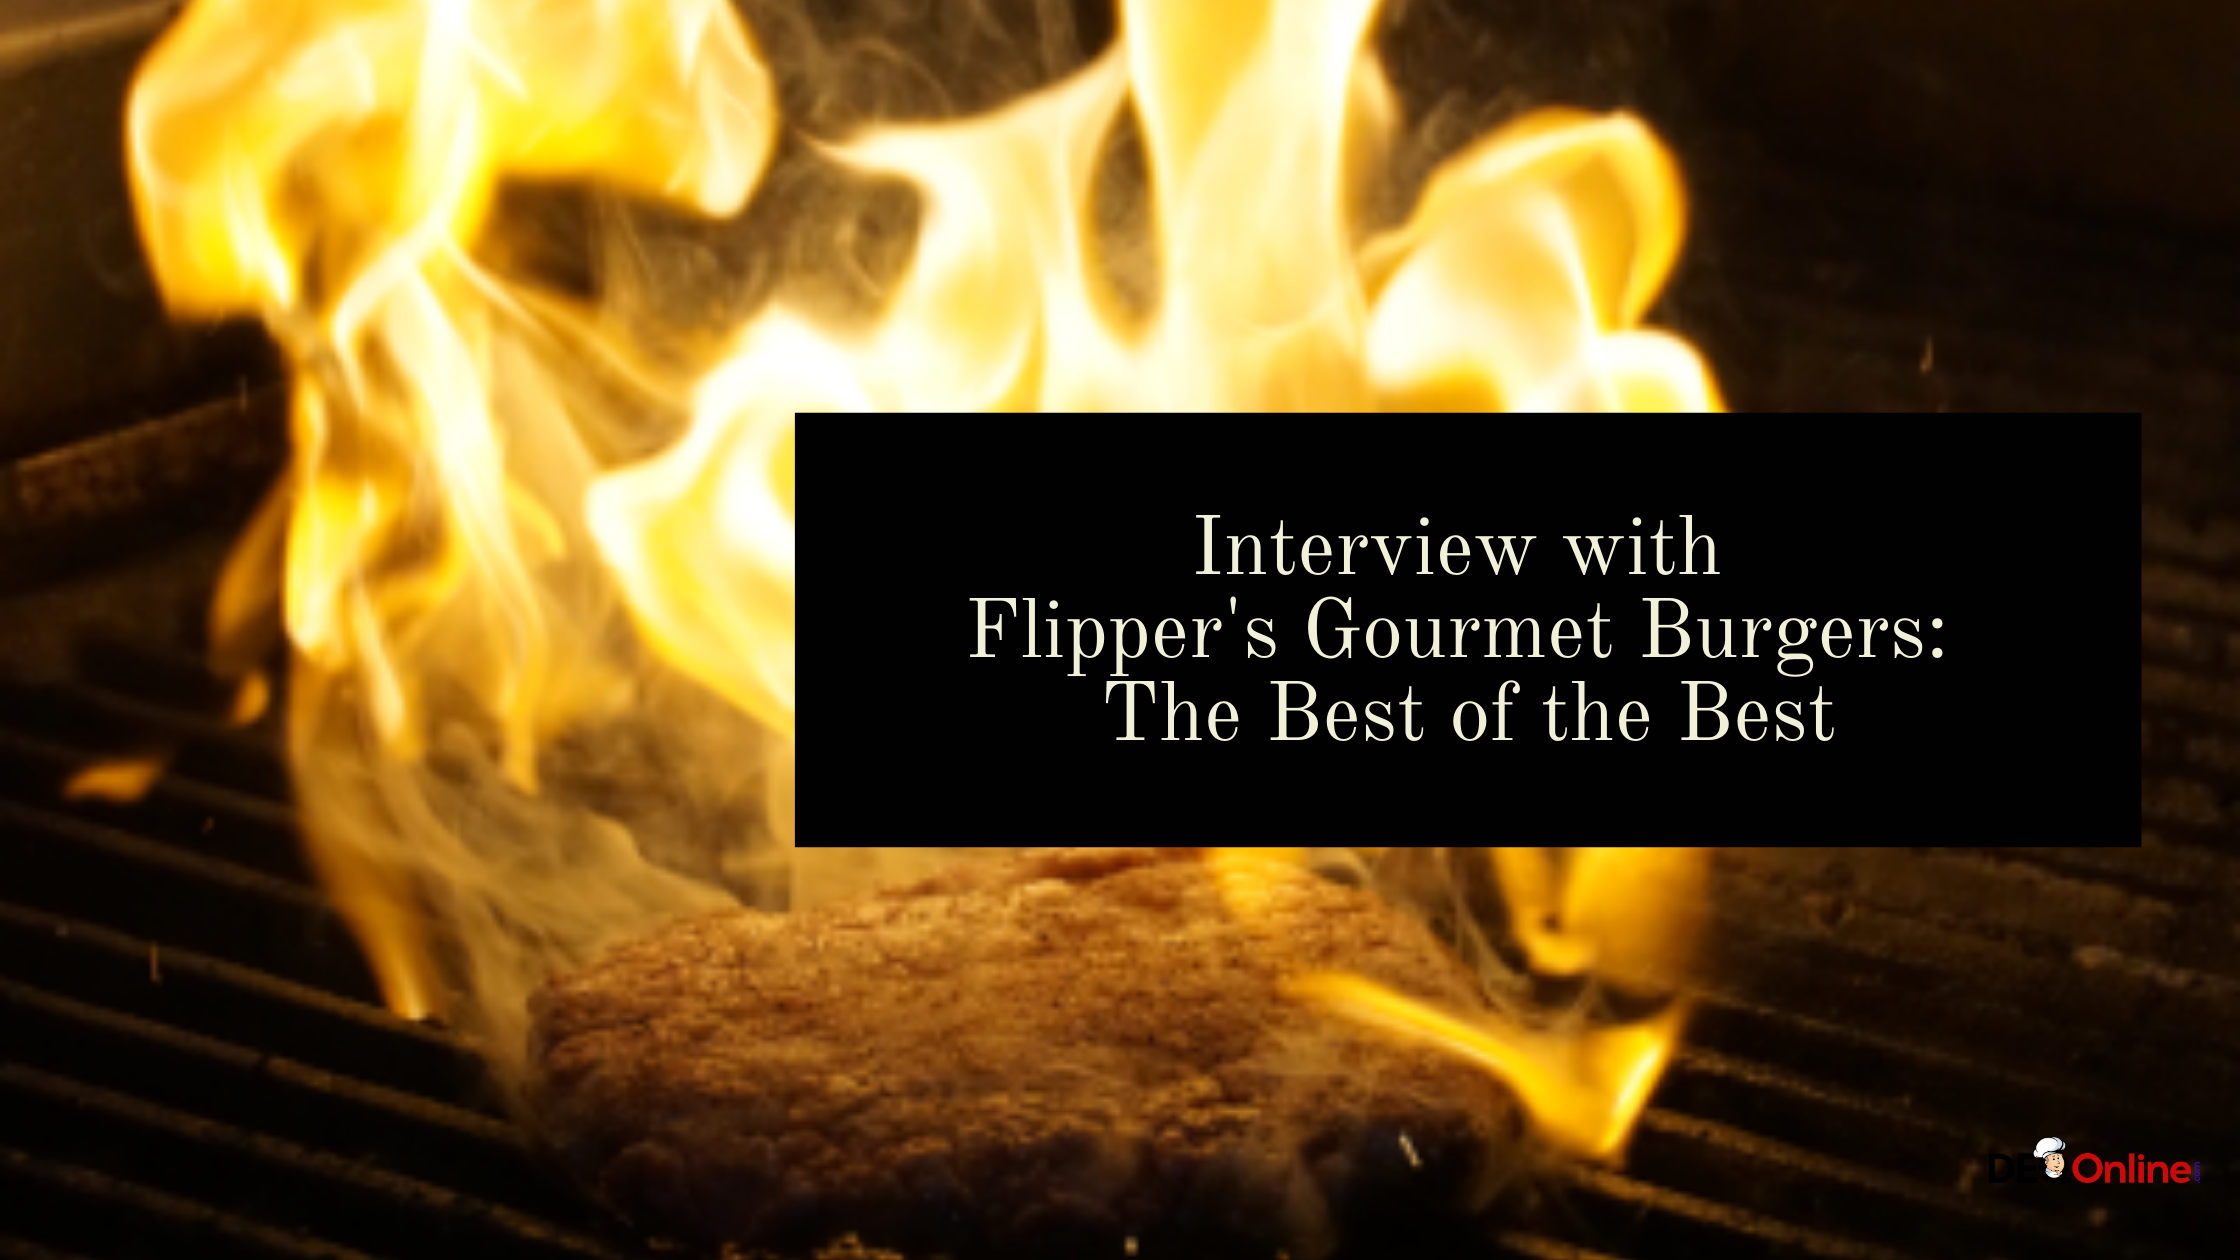 Interview with Flipper's Gourmet Burgers: The Best of the Best